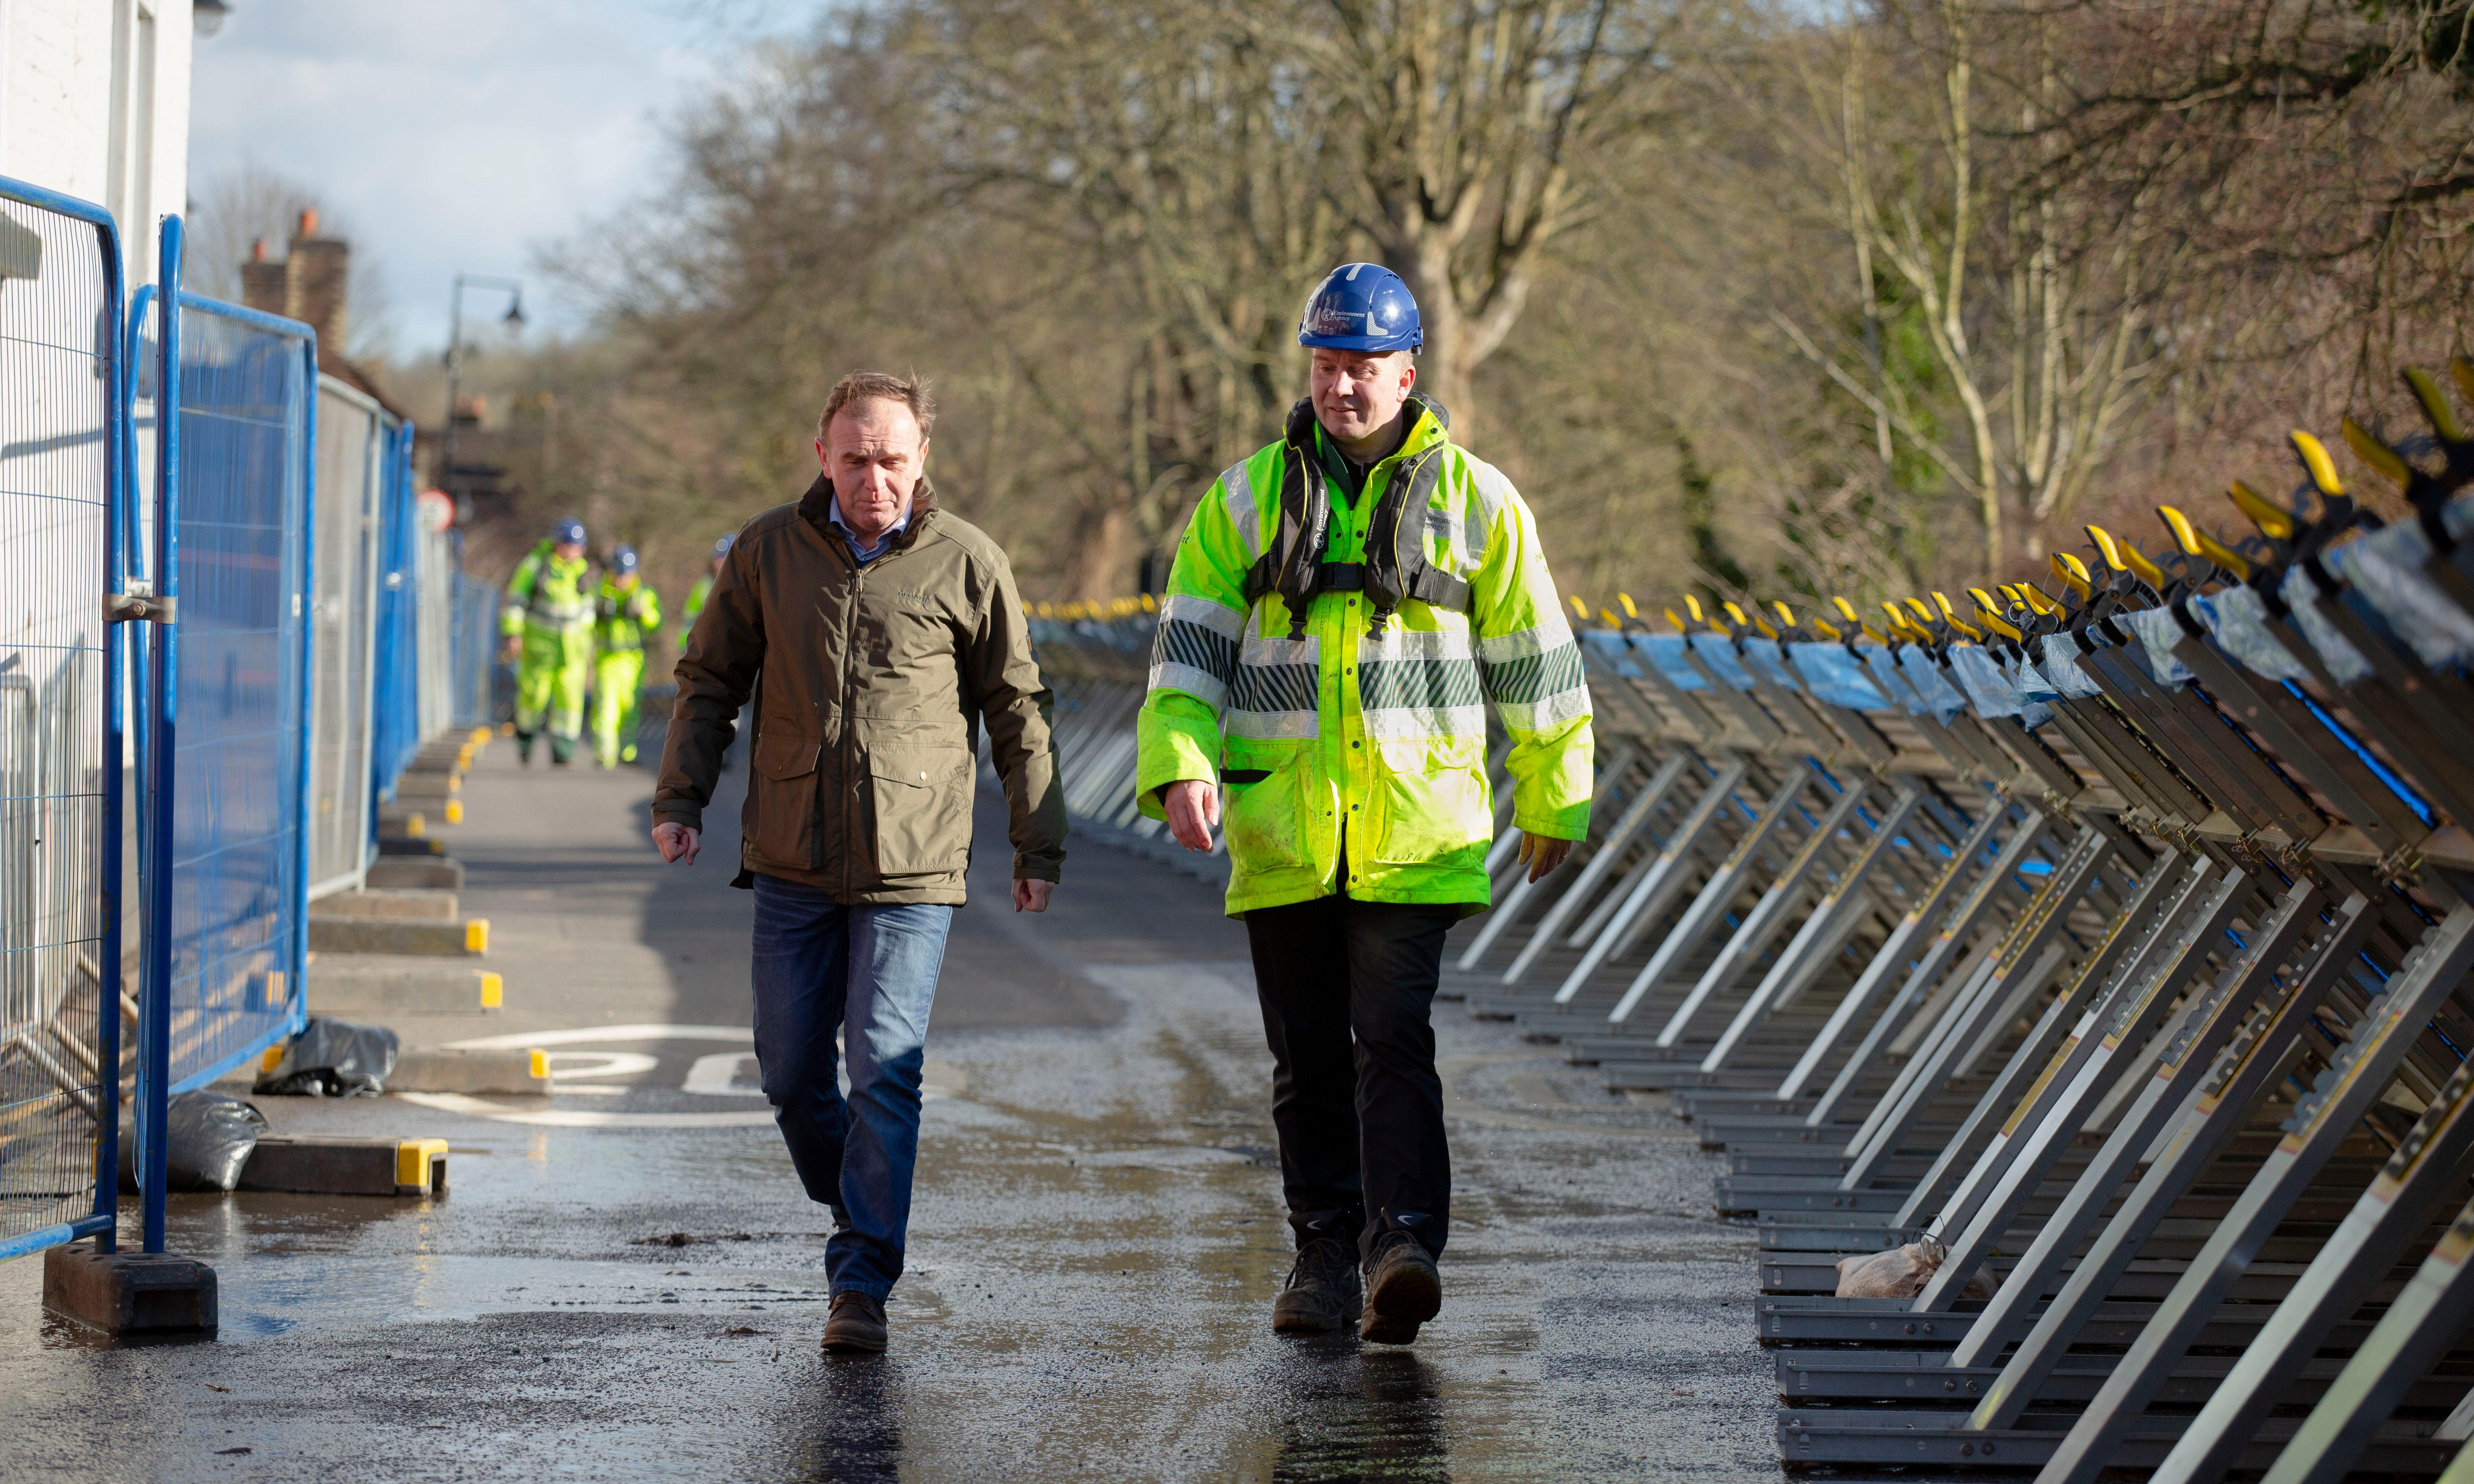 Minister criticised for not meeting evacuees on visit to flood-hit town